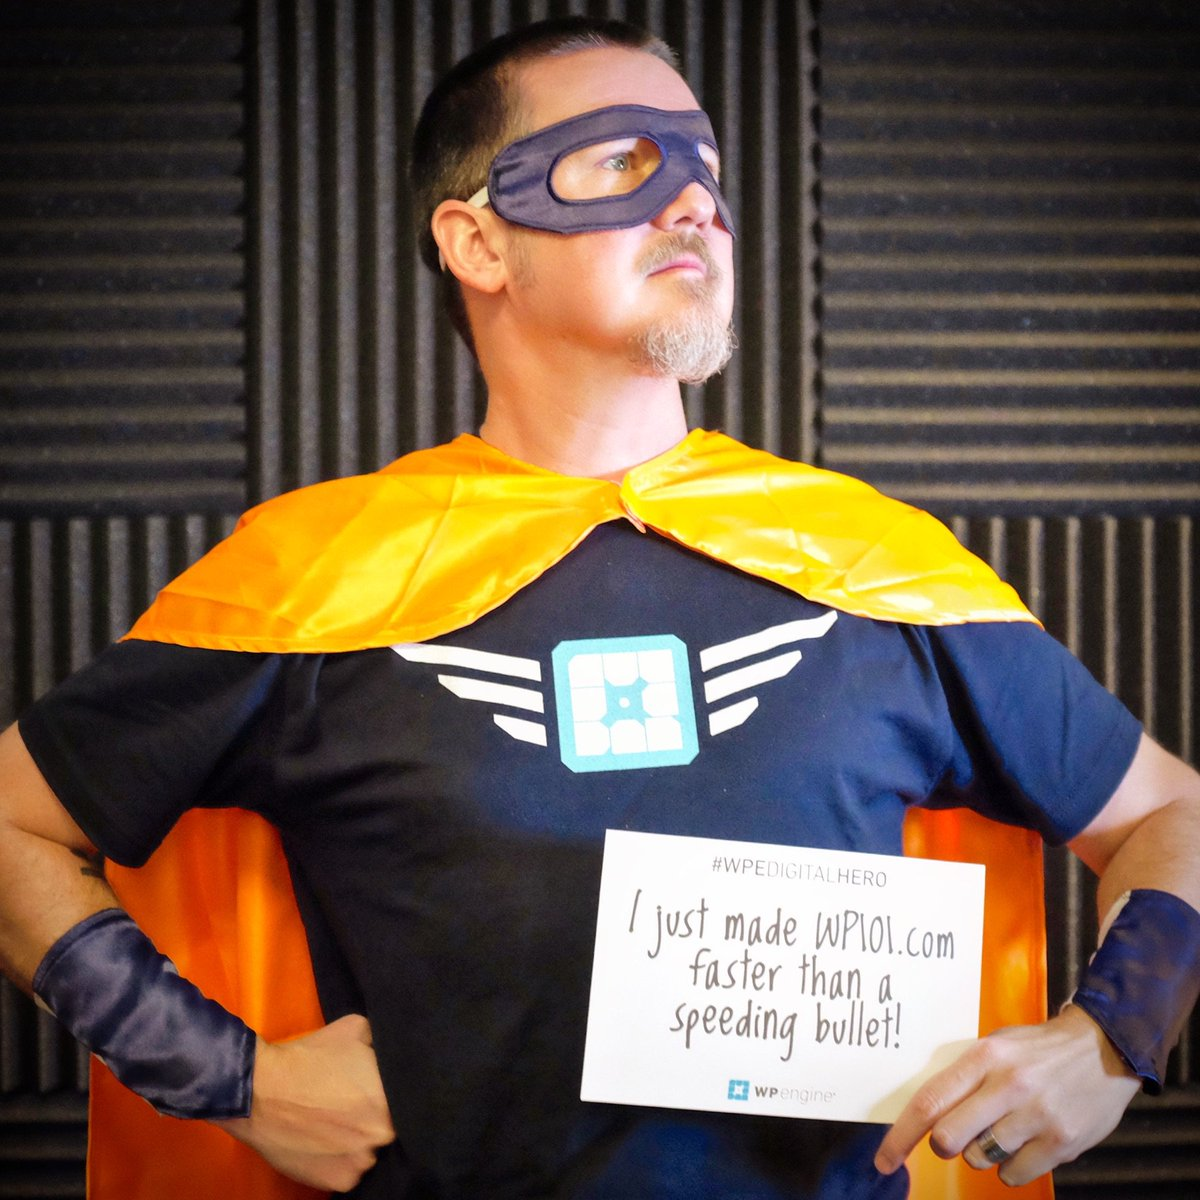 I just made https://t.co/z0yzi5jgj0 load even faster with @WPEngine's new Page Performance tool! #WPEdigitalhero https://t.co/oVYzSnvuv5